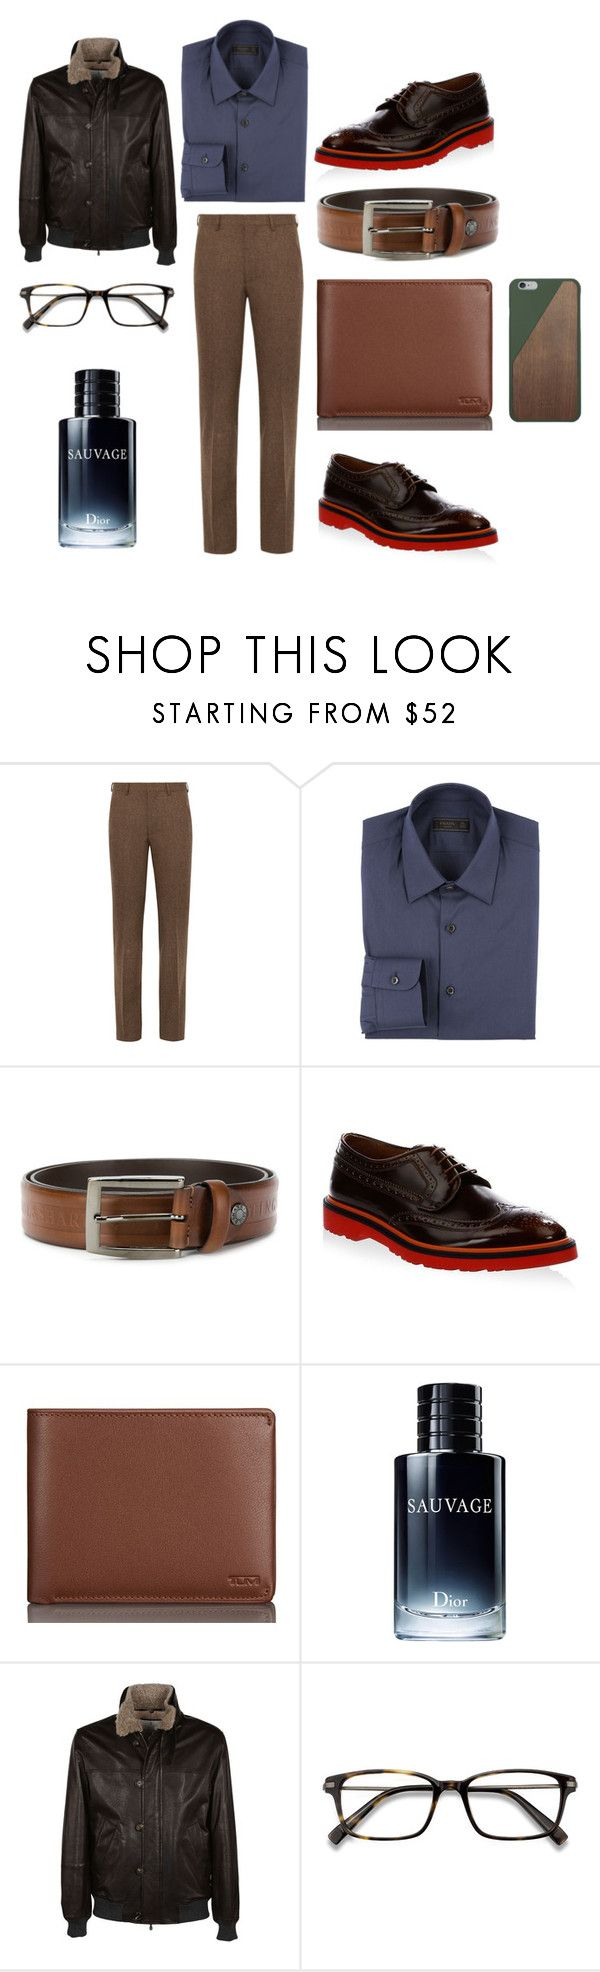 """Untitled #2933"" by moestesoh ❤ liked on Polyvore featuring Prada, Paul & Shark, Paul Smith, Tumi, Christian Dior, Brunello Cucinelli, EyeBuyDirect.com and Native Union"